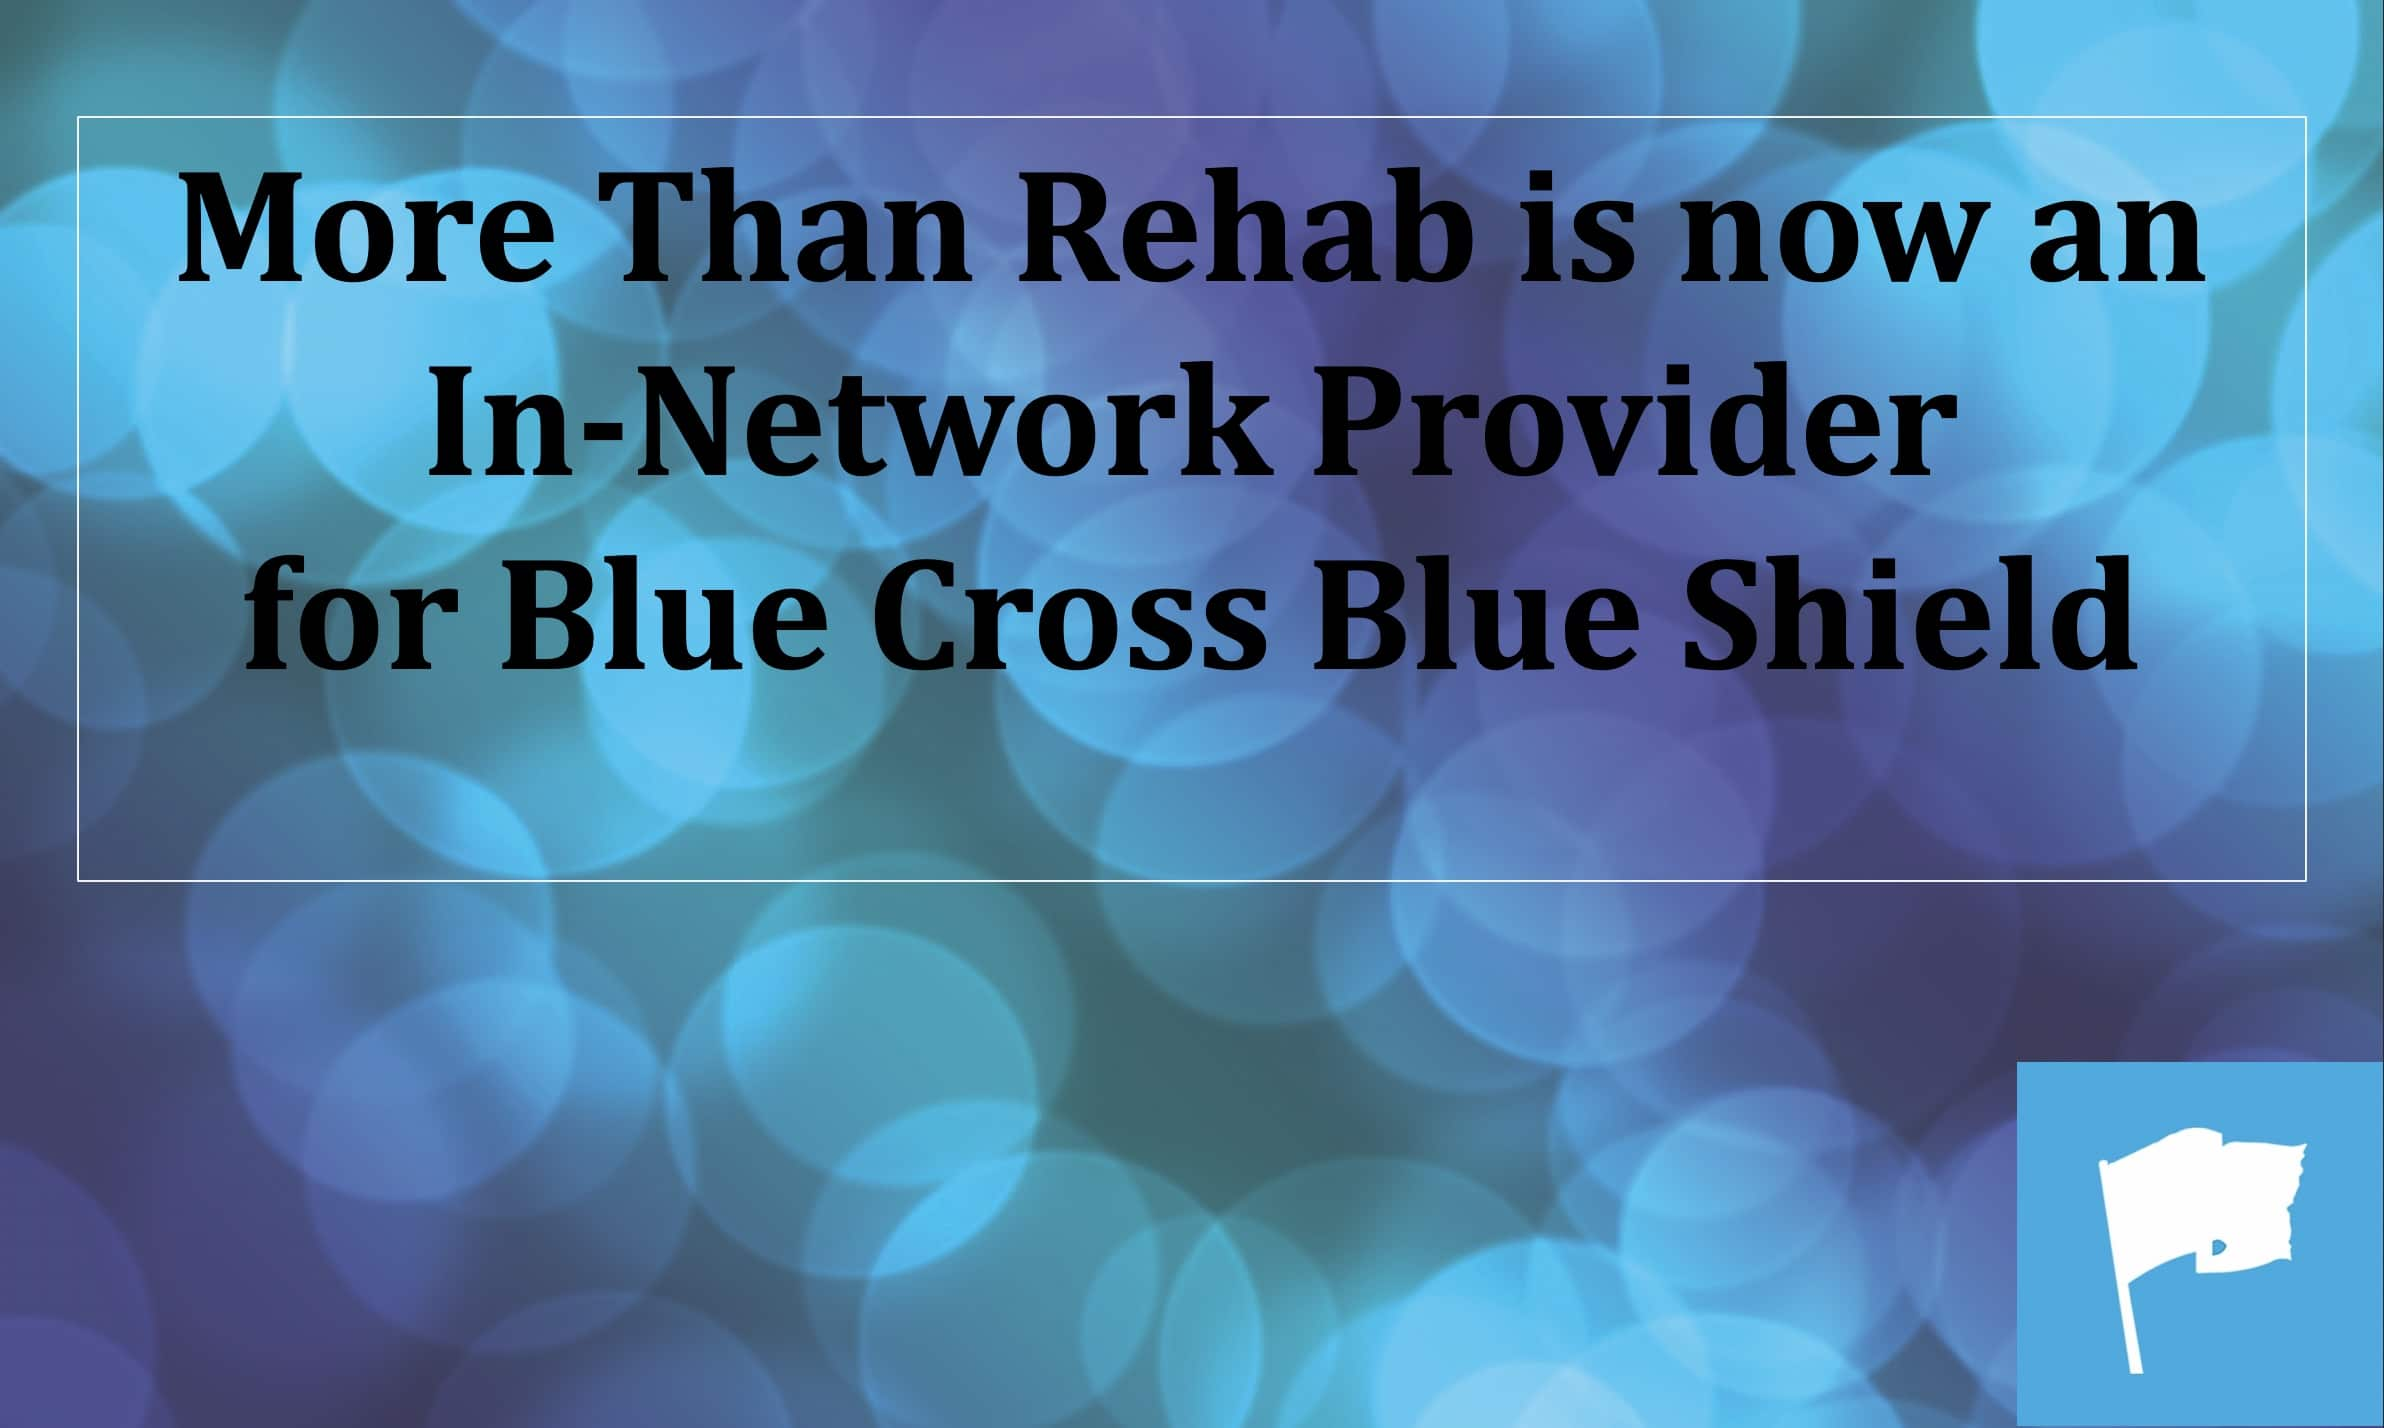 blue-cross-blue-shield-Houston-Texas-addiction-treatment-alcohol-drug-rehabilitation